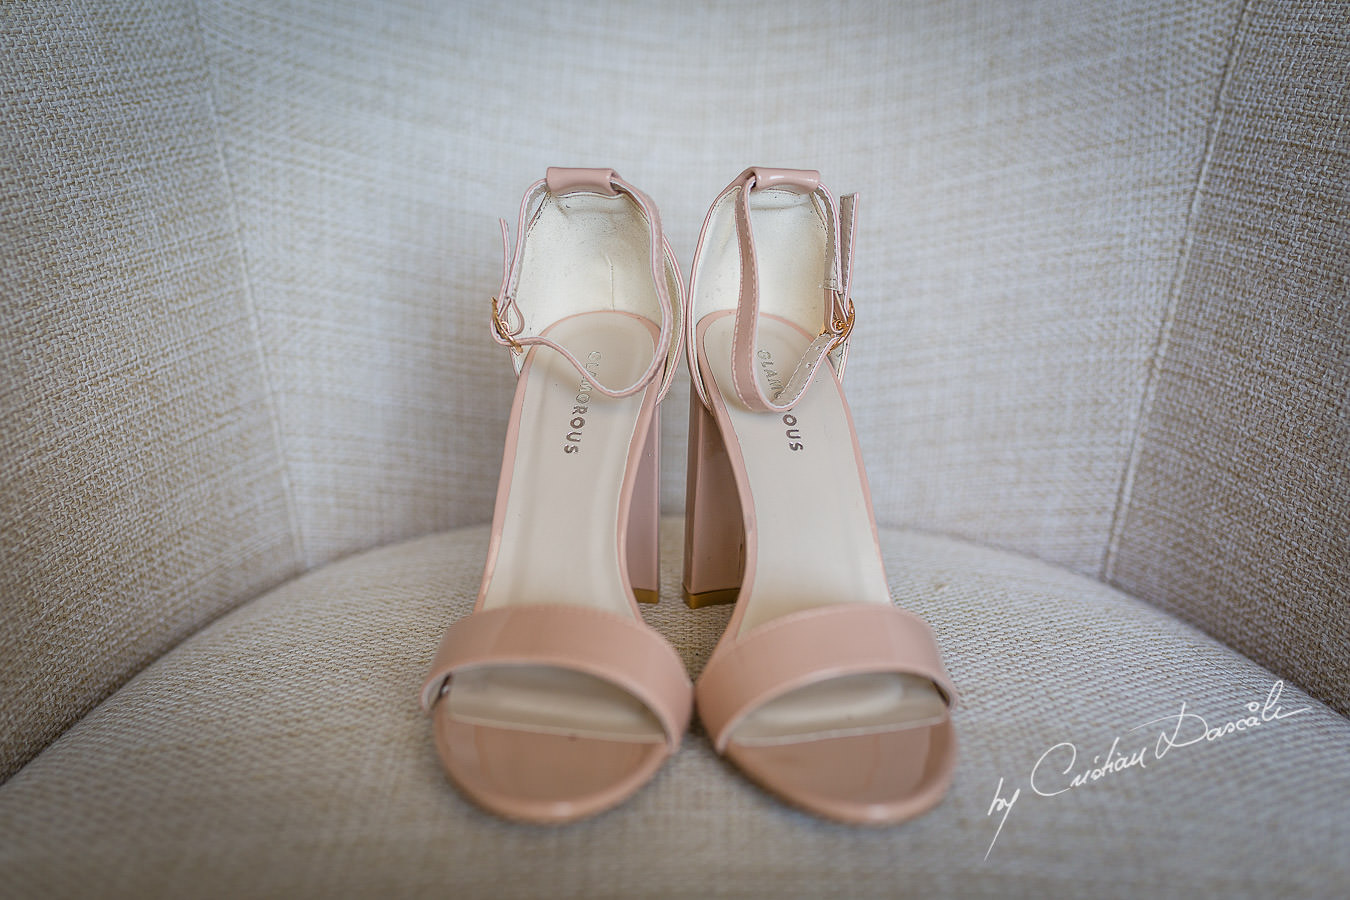 Bride's shoes photographed by Cristian Dascalu at Athena Beach Hotel in Paphos, Cyprus, during a symbolic wedding.